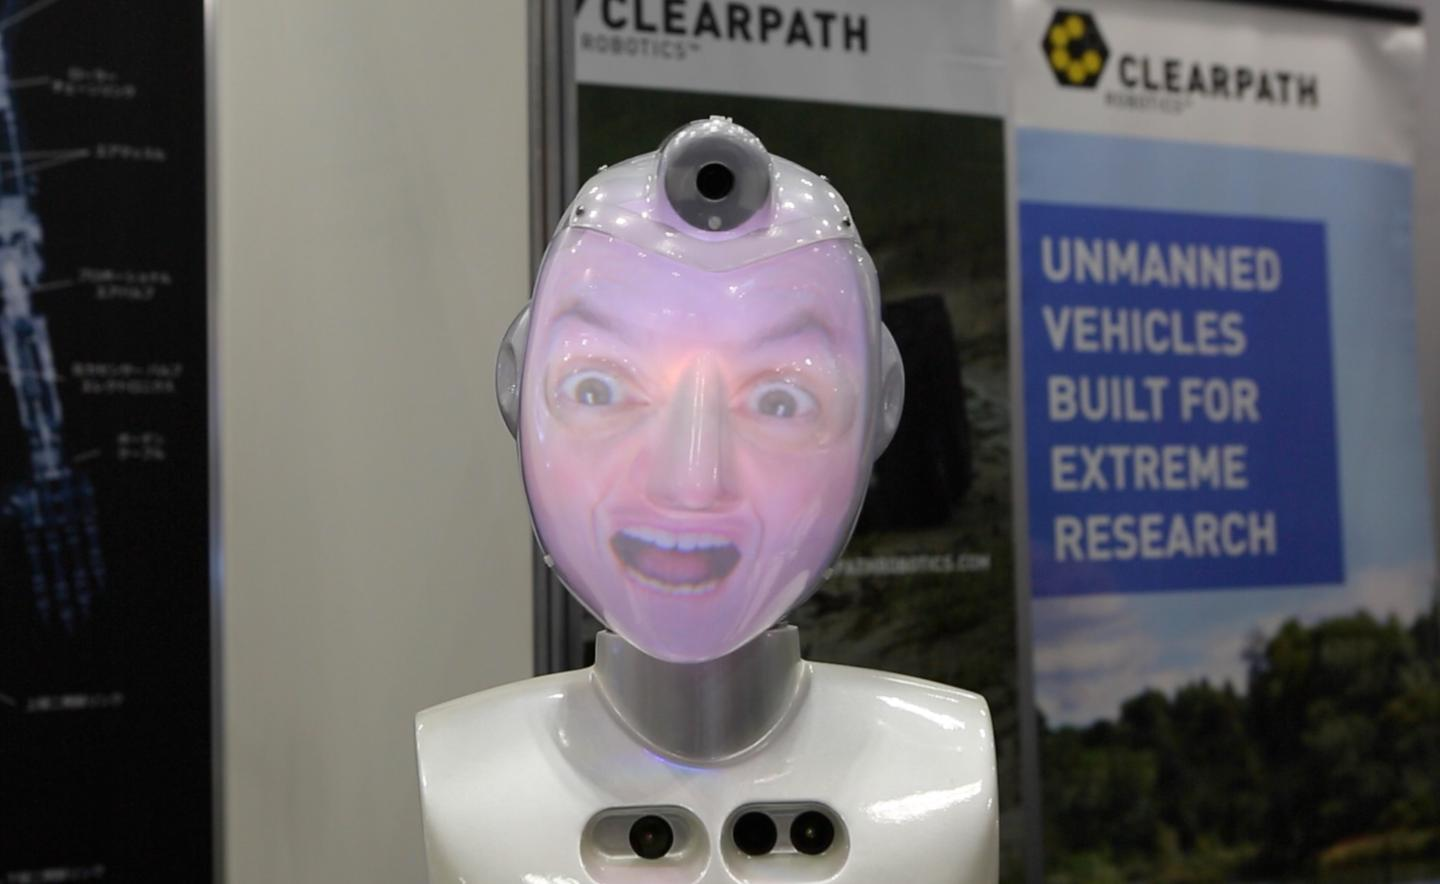 SociBot is capable of displaying a variety of facial identities